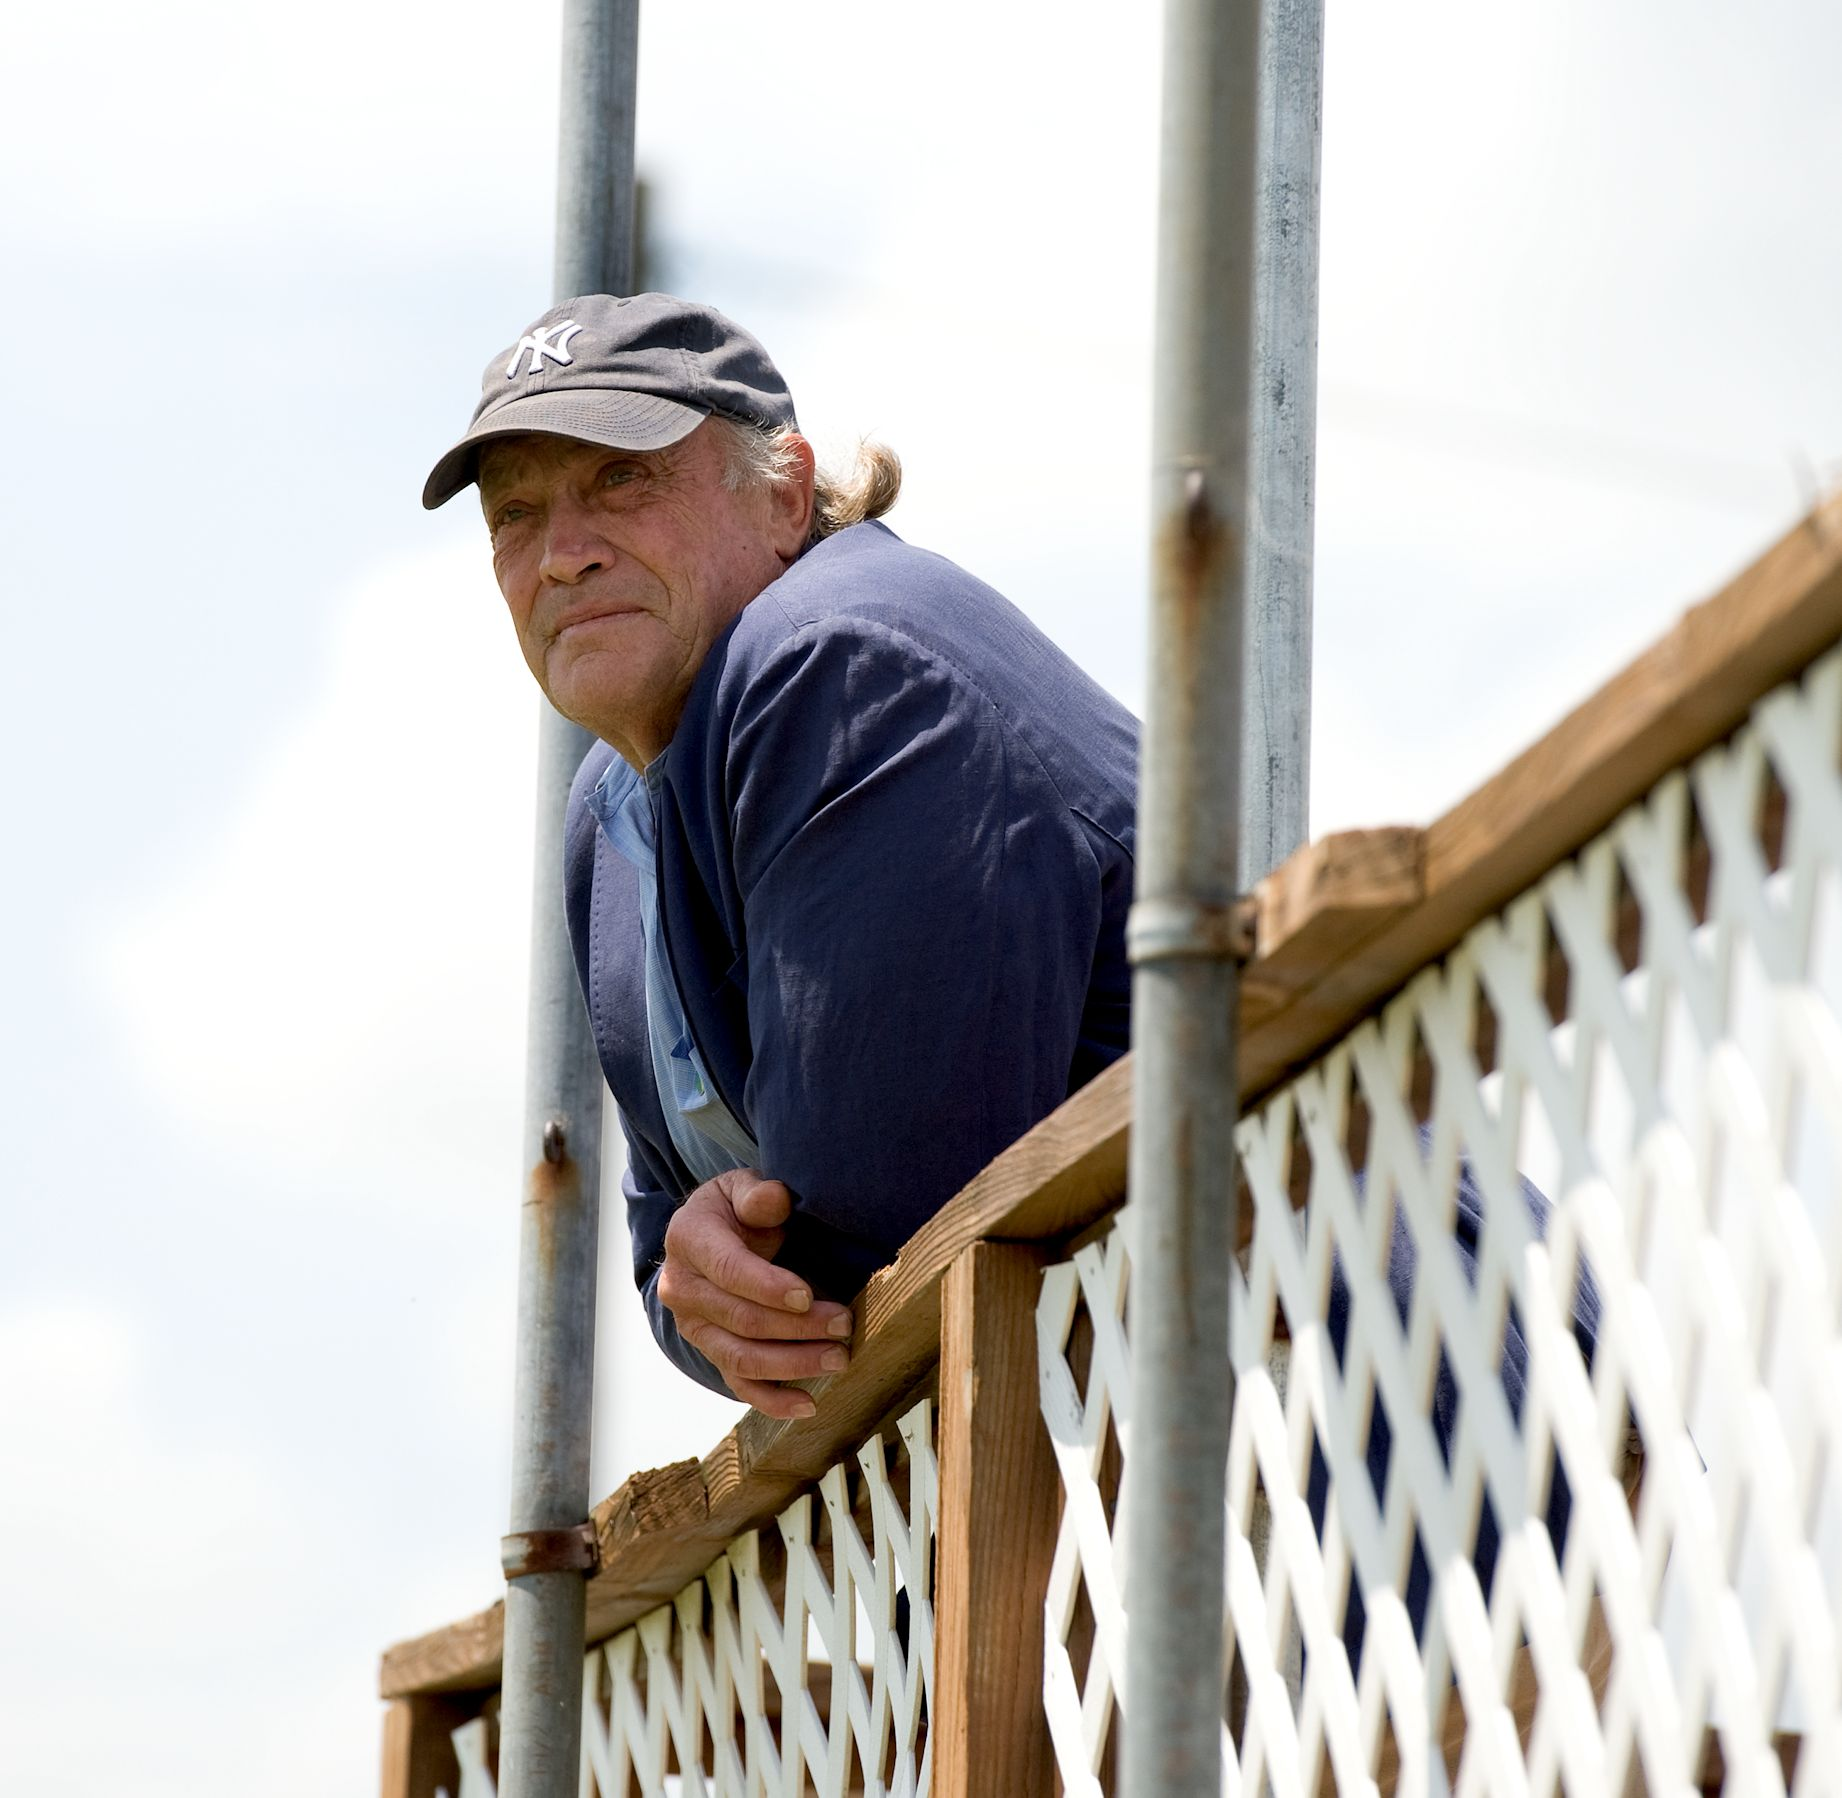 Tom Voss watches Sharp Island win from the infield stand (Tod Marks)